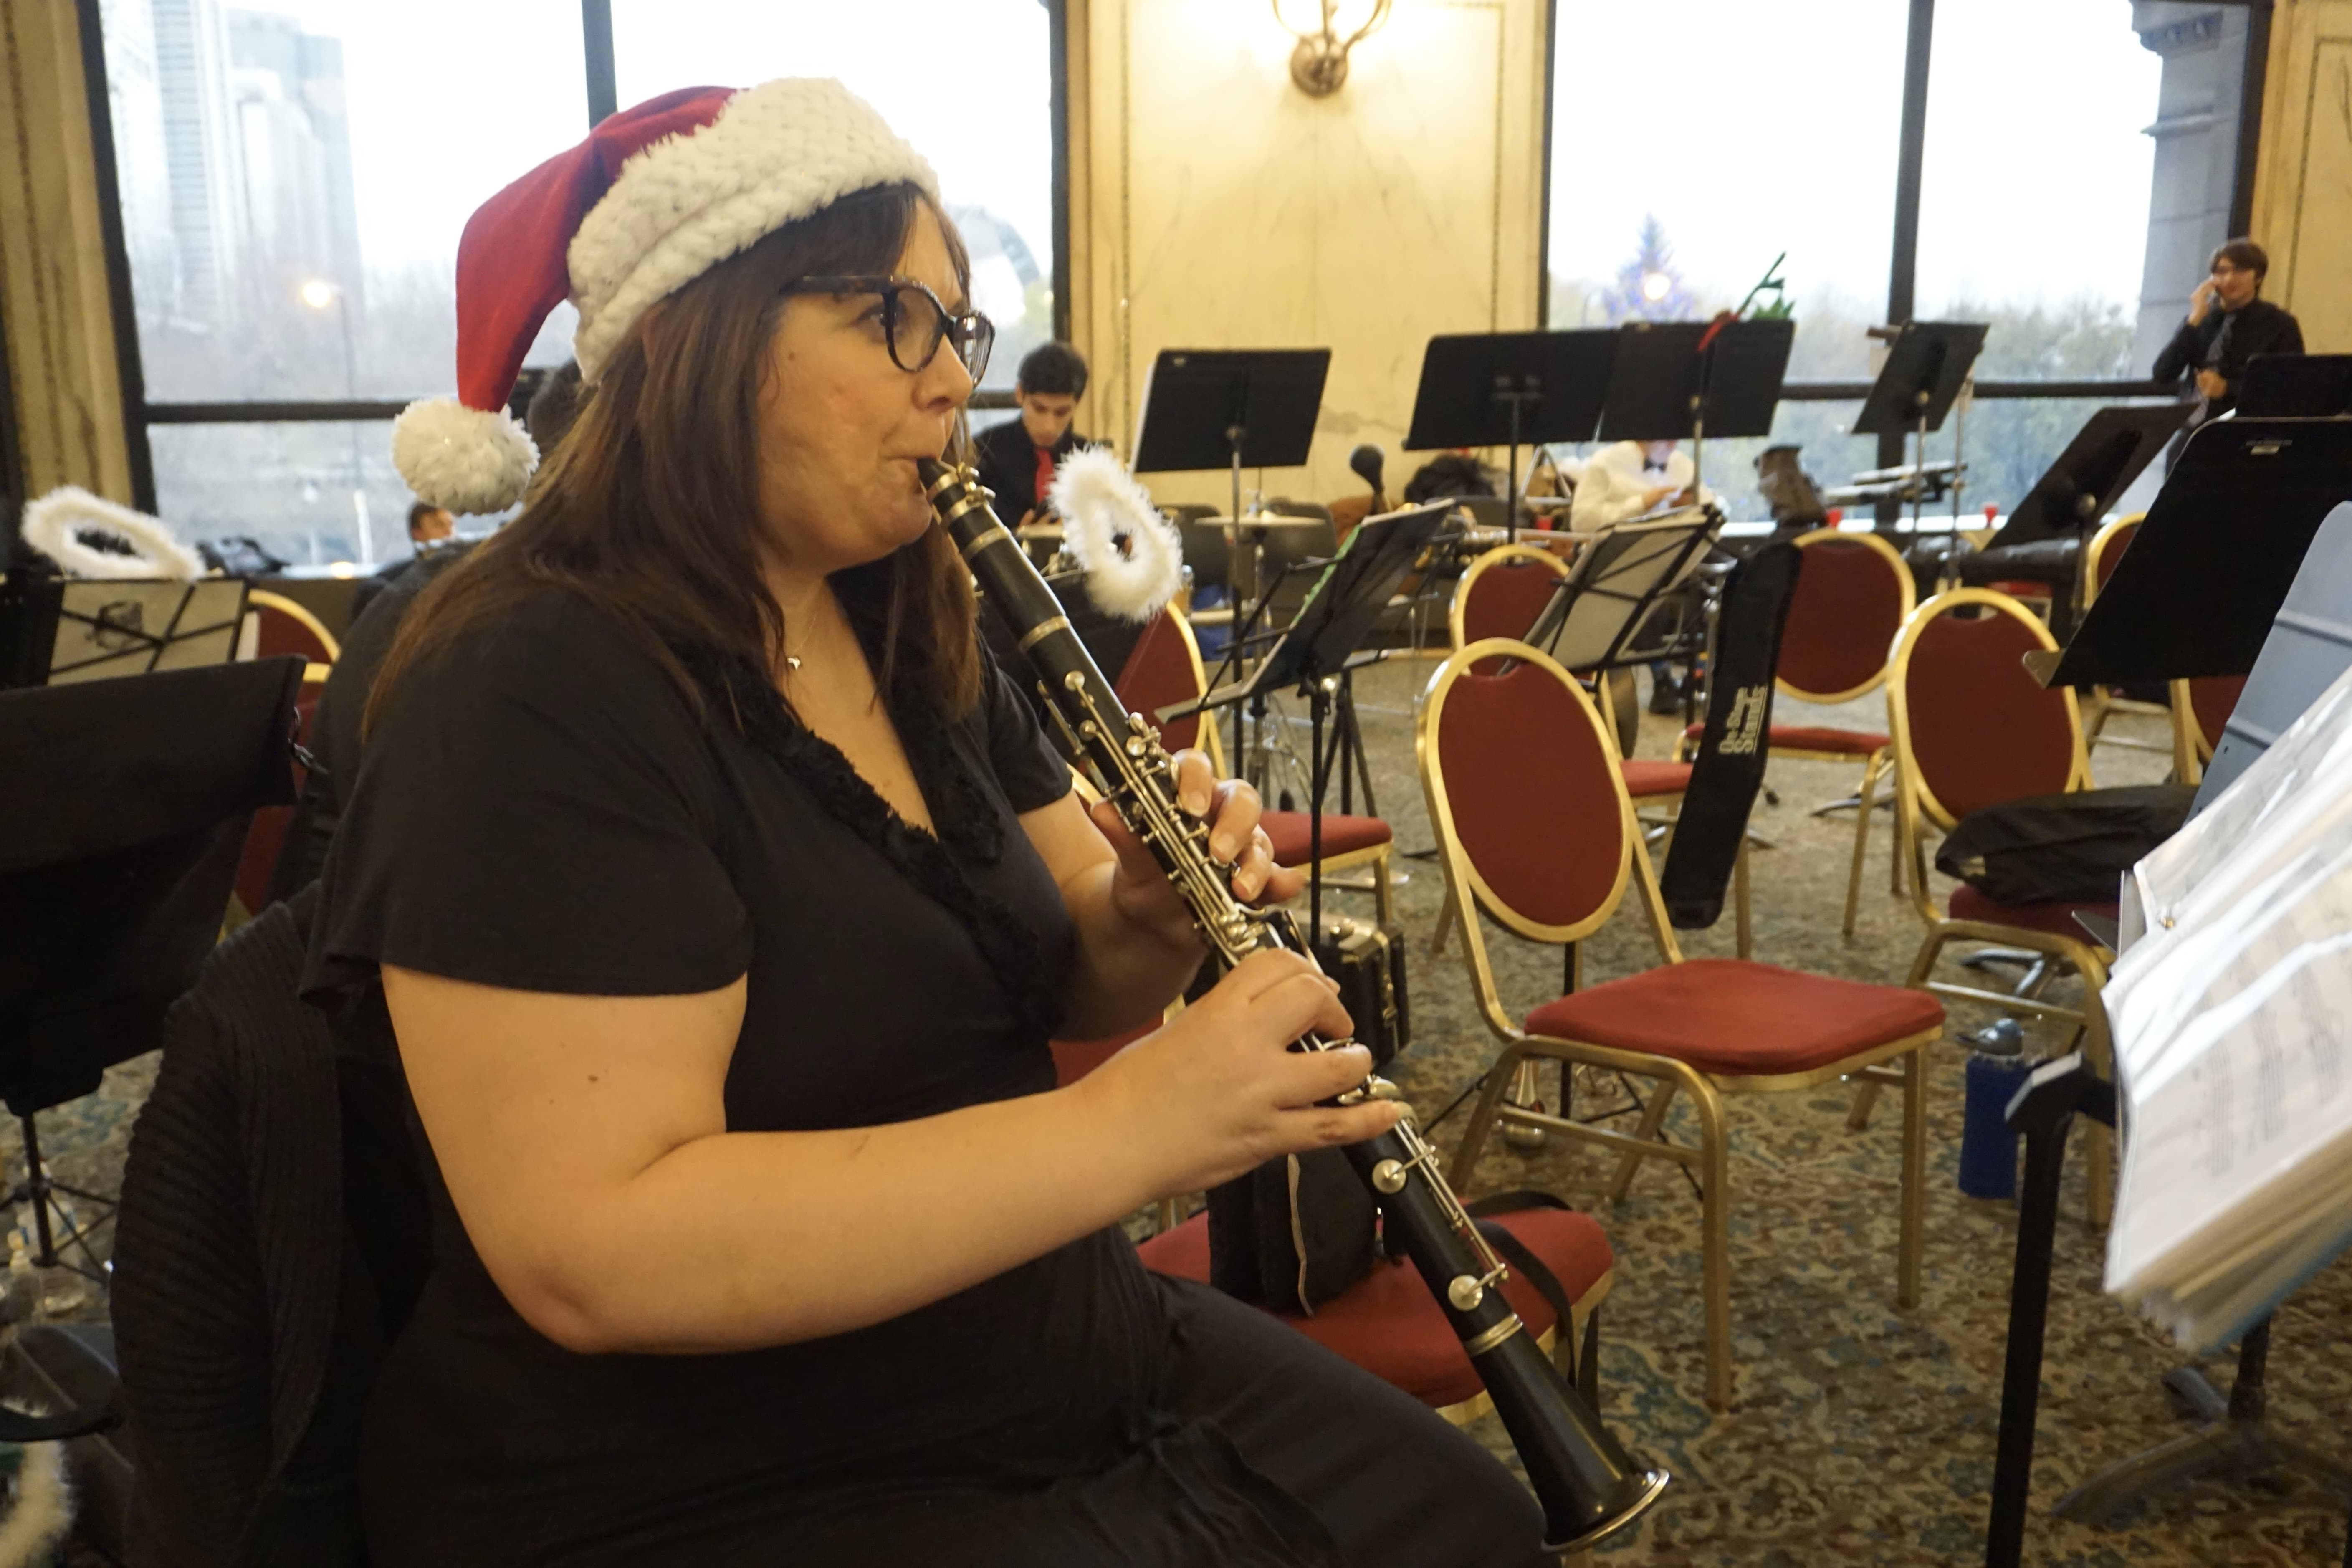 """""""Music helped me to come out of my shell when I was younger,"""" said Vahona Richardson, a volunteer clarinet player since May. She said music showed her that she had a unique talent, and taught her to work hard toward a goal. (Xiaoyi Liu/MEDILL)"""